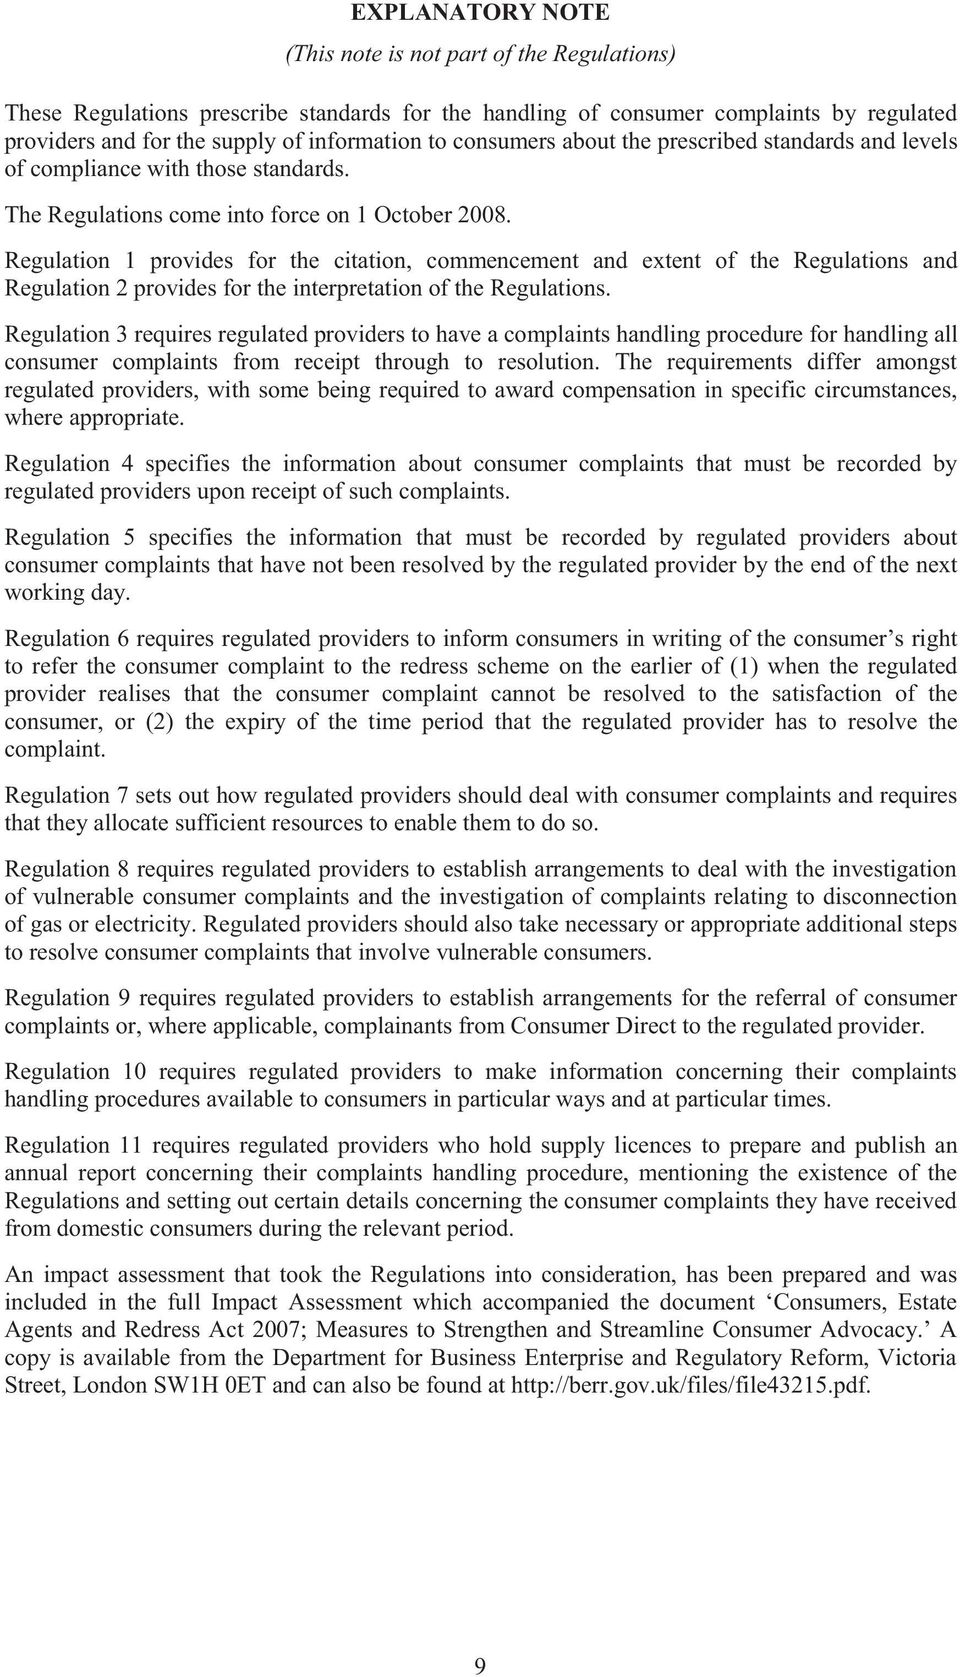 Regulation 1 provides for the citation, commencement and extent of the Regulations and Regulation 2 provides for the interpretation of the Regulations.